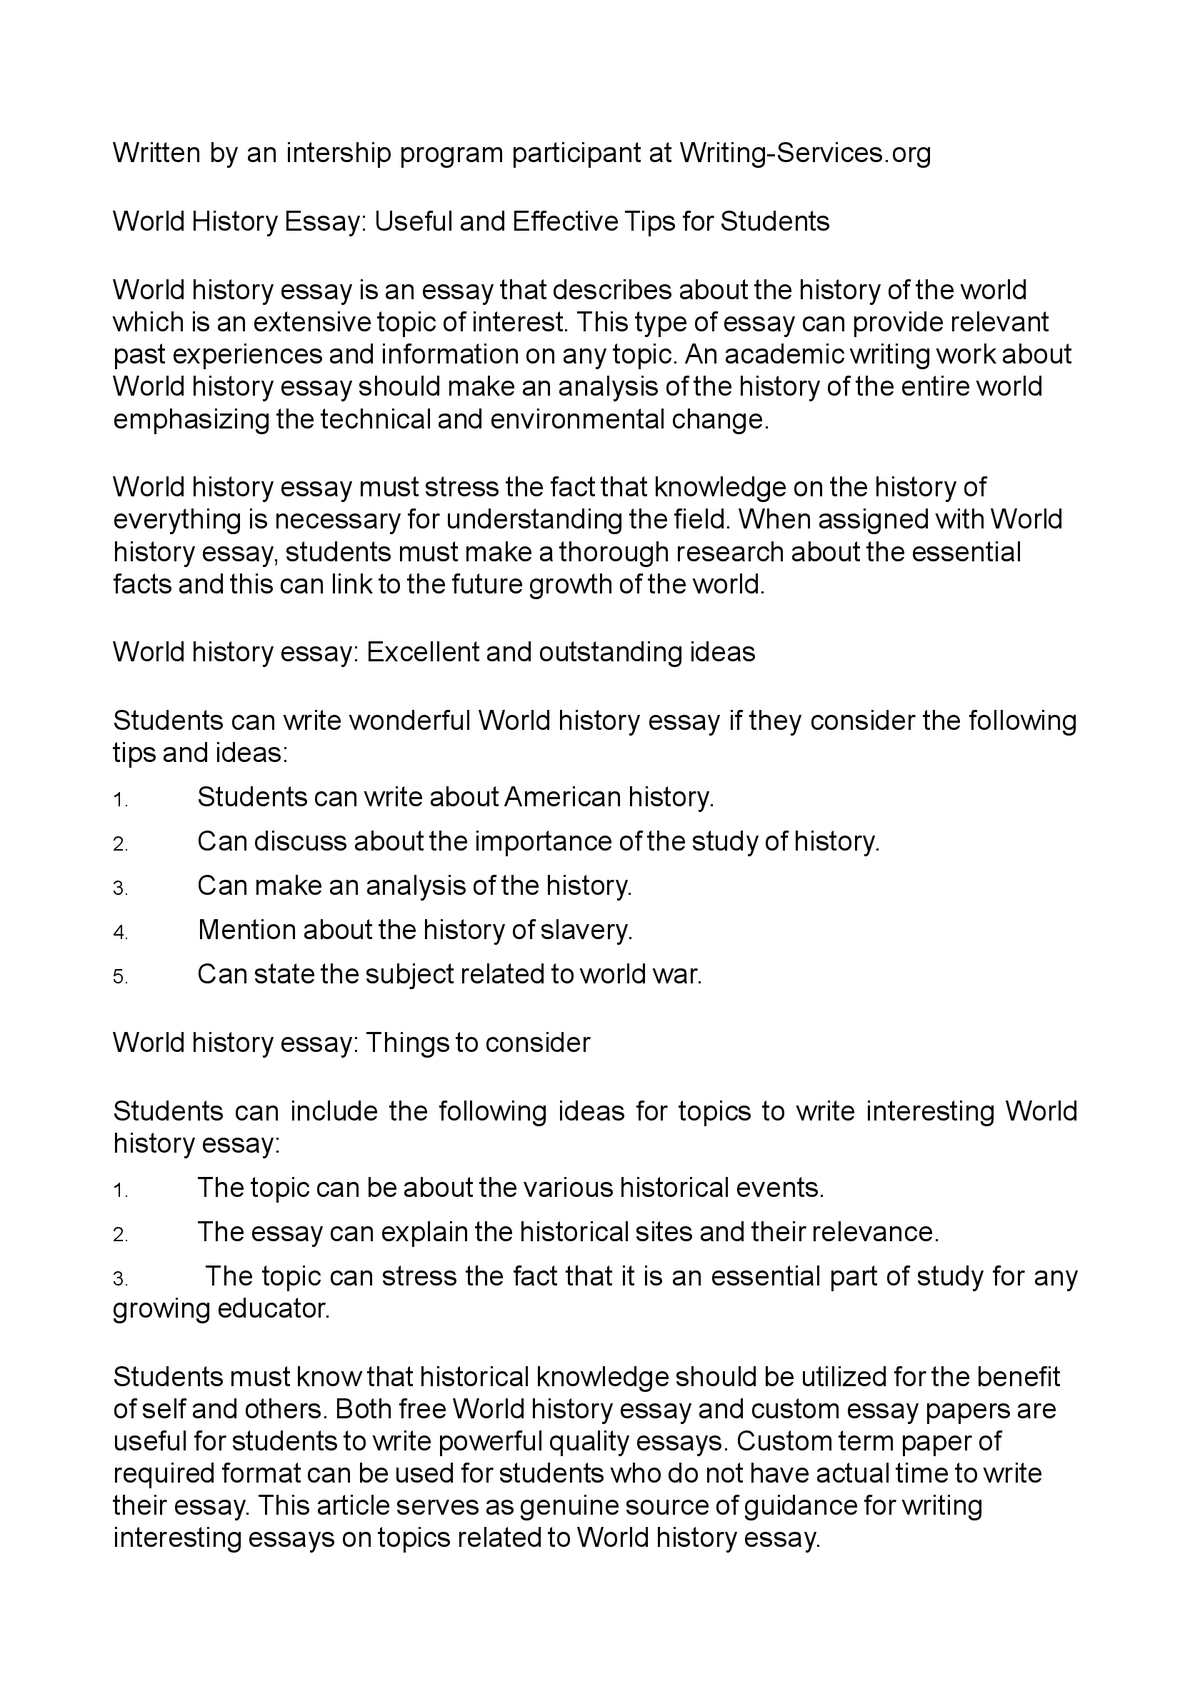 012 Good Topics For World History Researchs P1 Impressive Research Papers Full